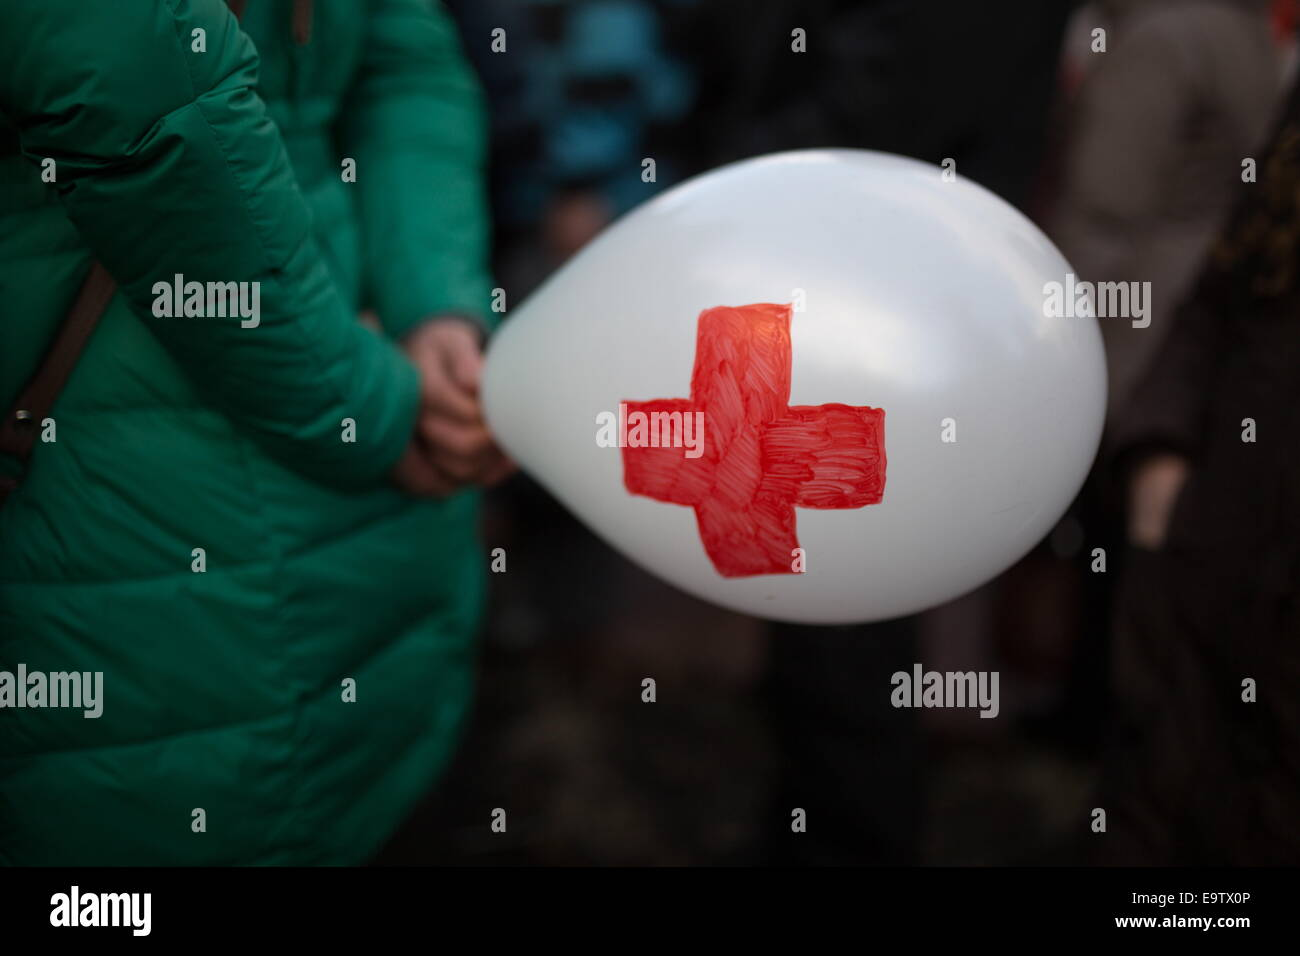 Moscow, Russia. 2nd Nov, 2014. A demonstrator with a balloon bearing a red cross during a protest in central Moscow's - Stock Image